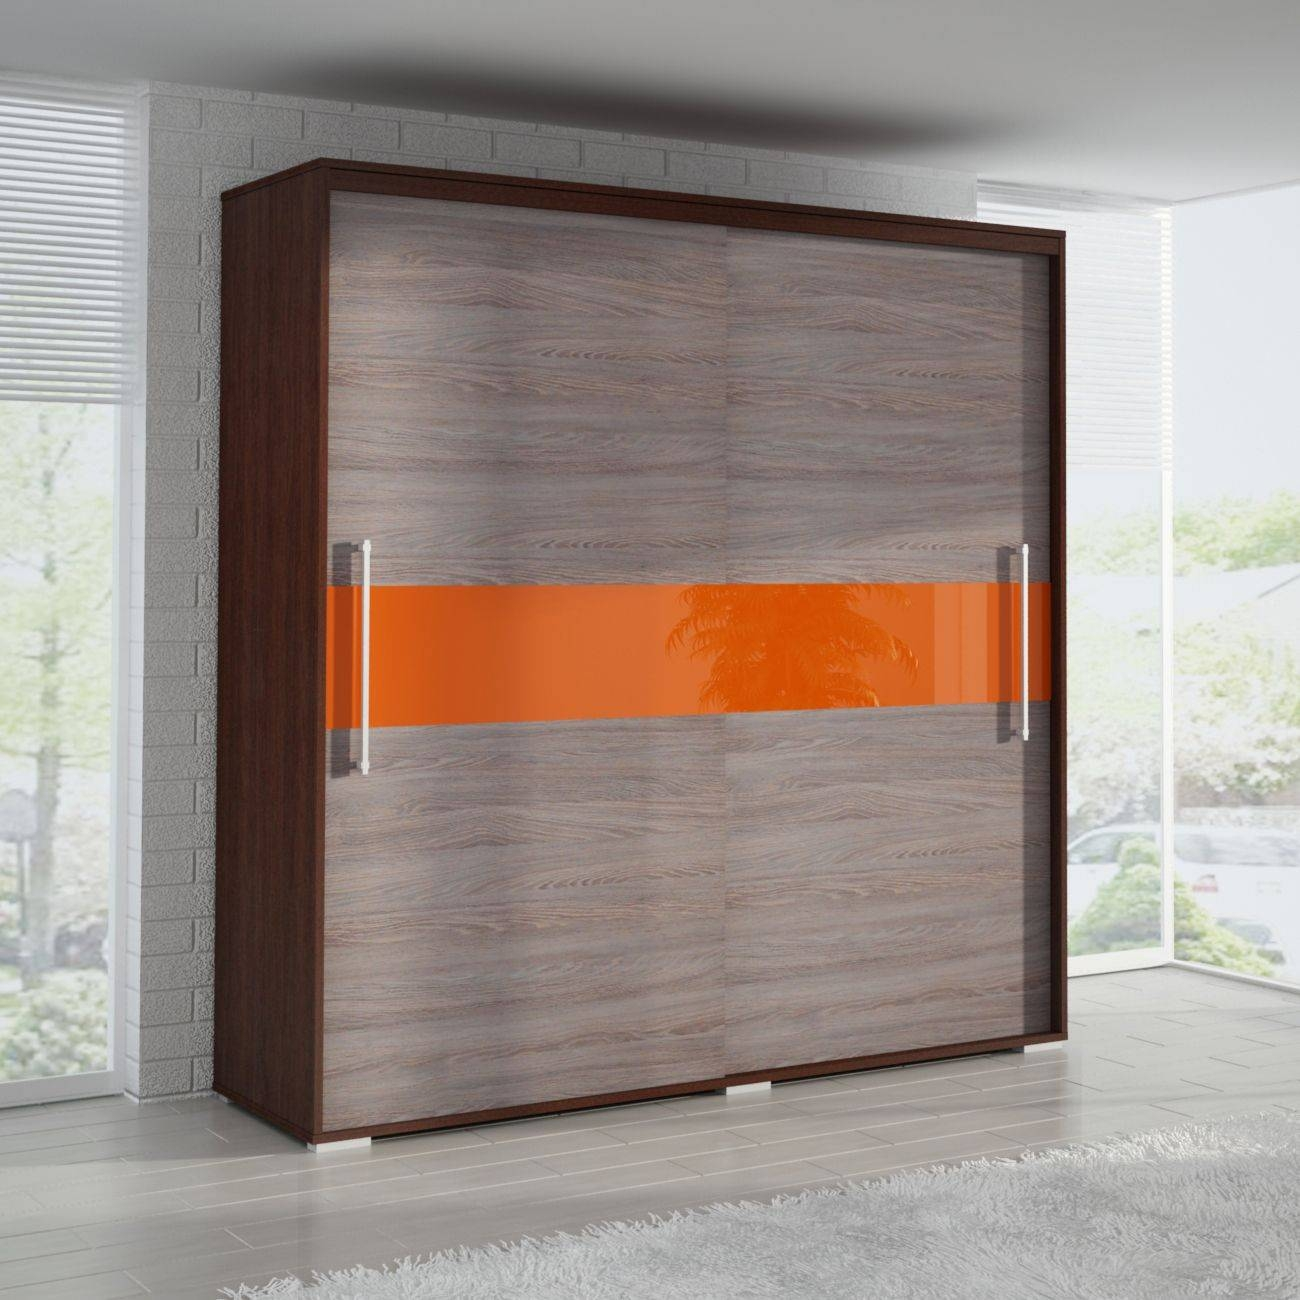 Door Sliding Wardrobe Tor200-2Dwc with regard to Wardrobes With 2 Sliding Doors (Image 2 of 15)